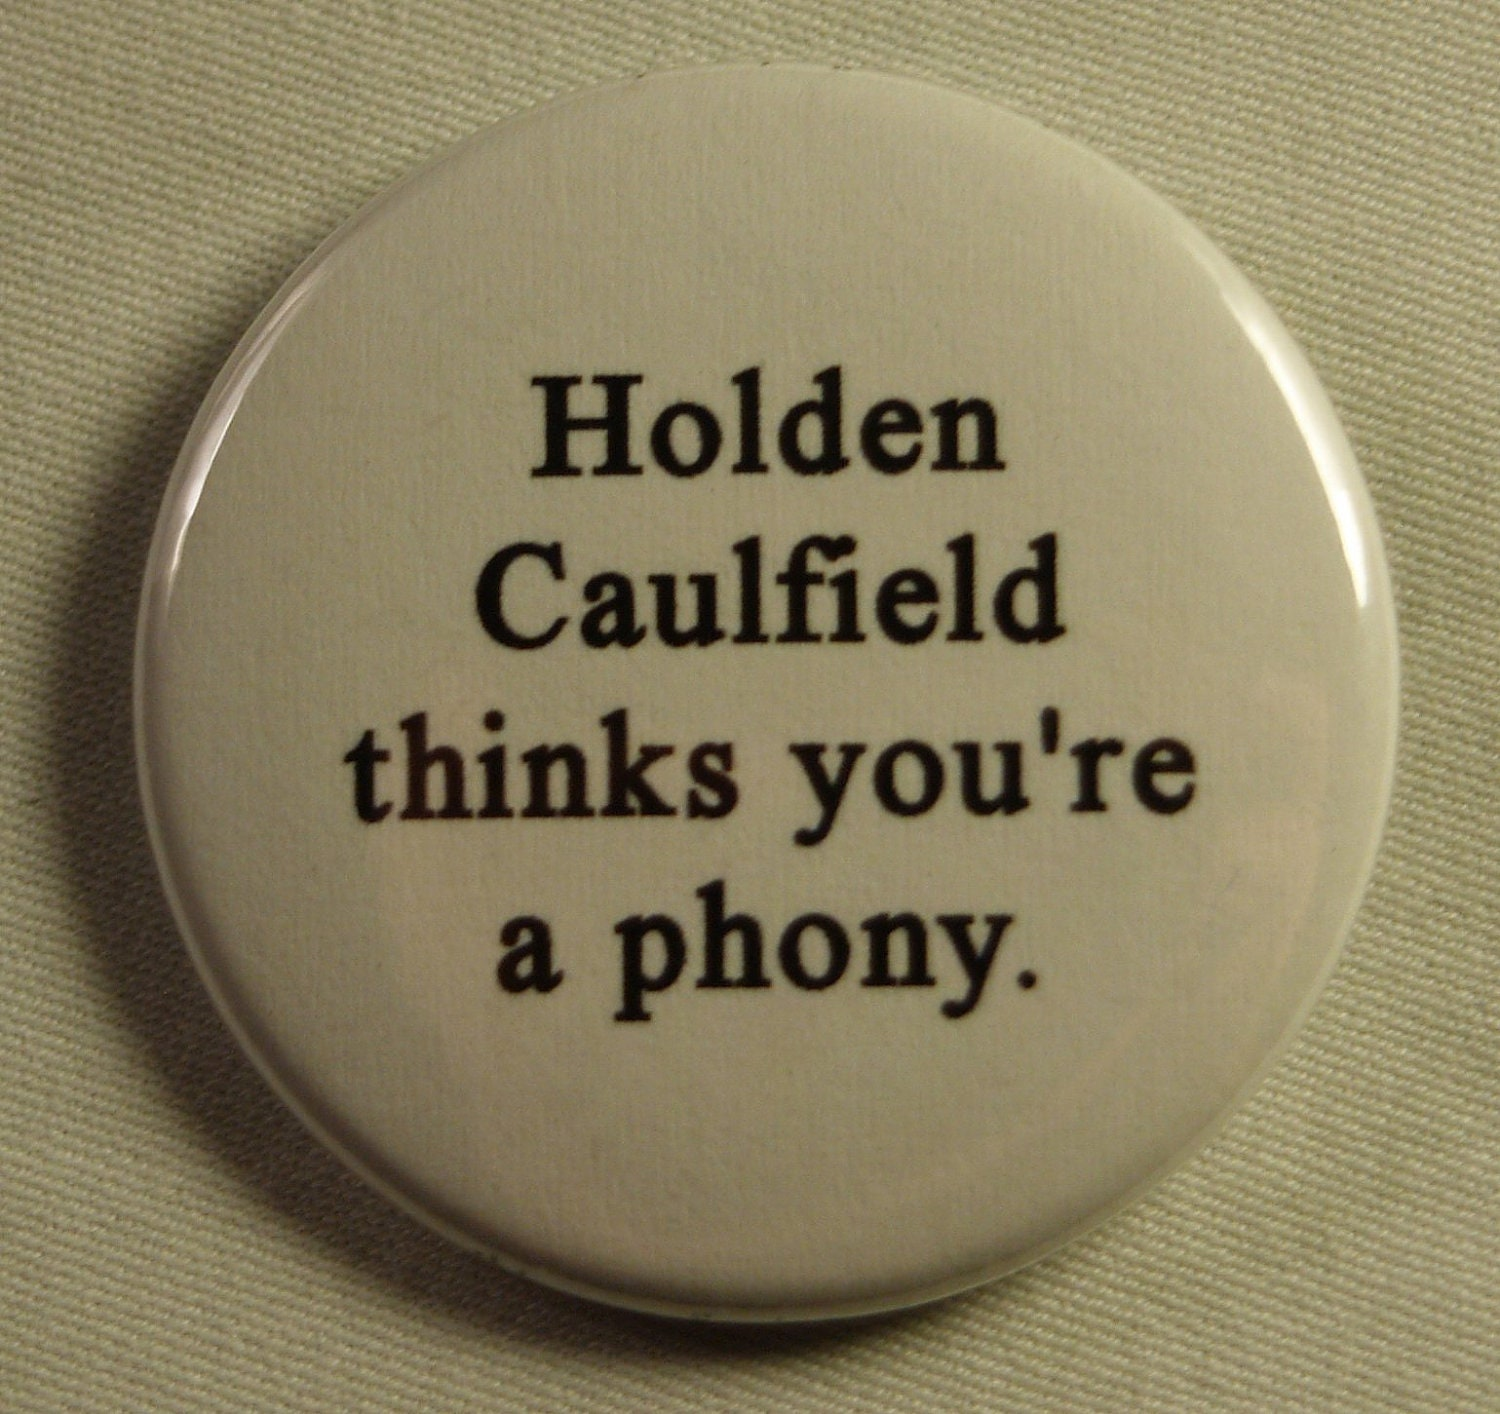 Holden caulfield thinks youre a phony